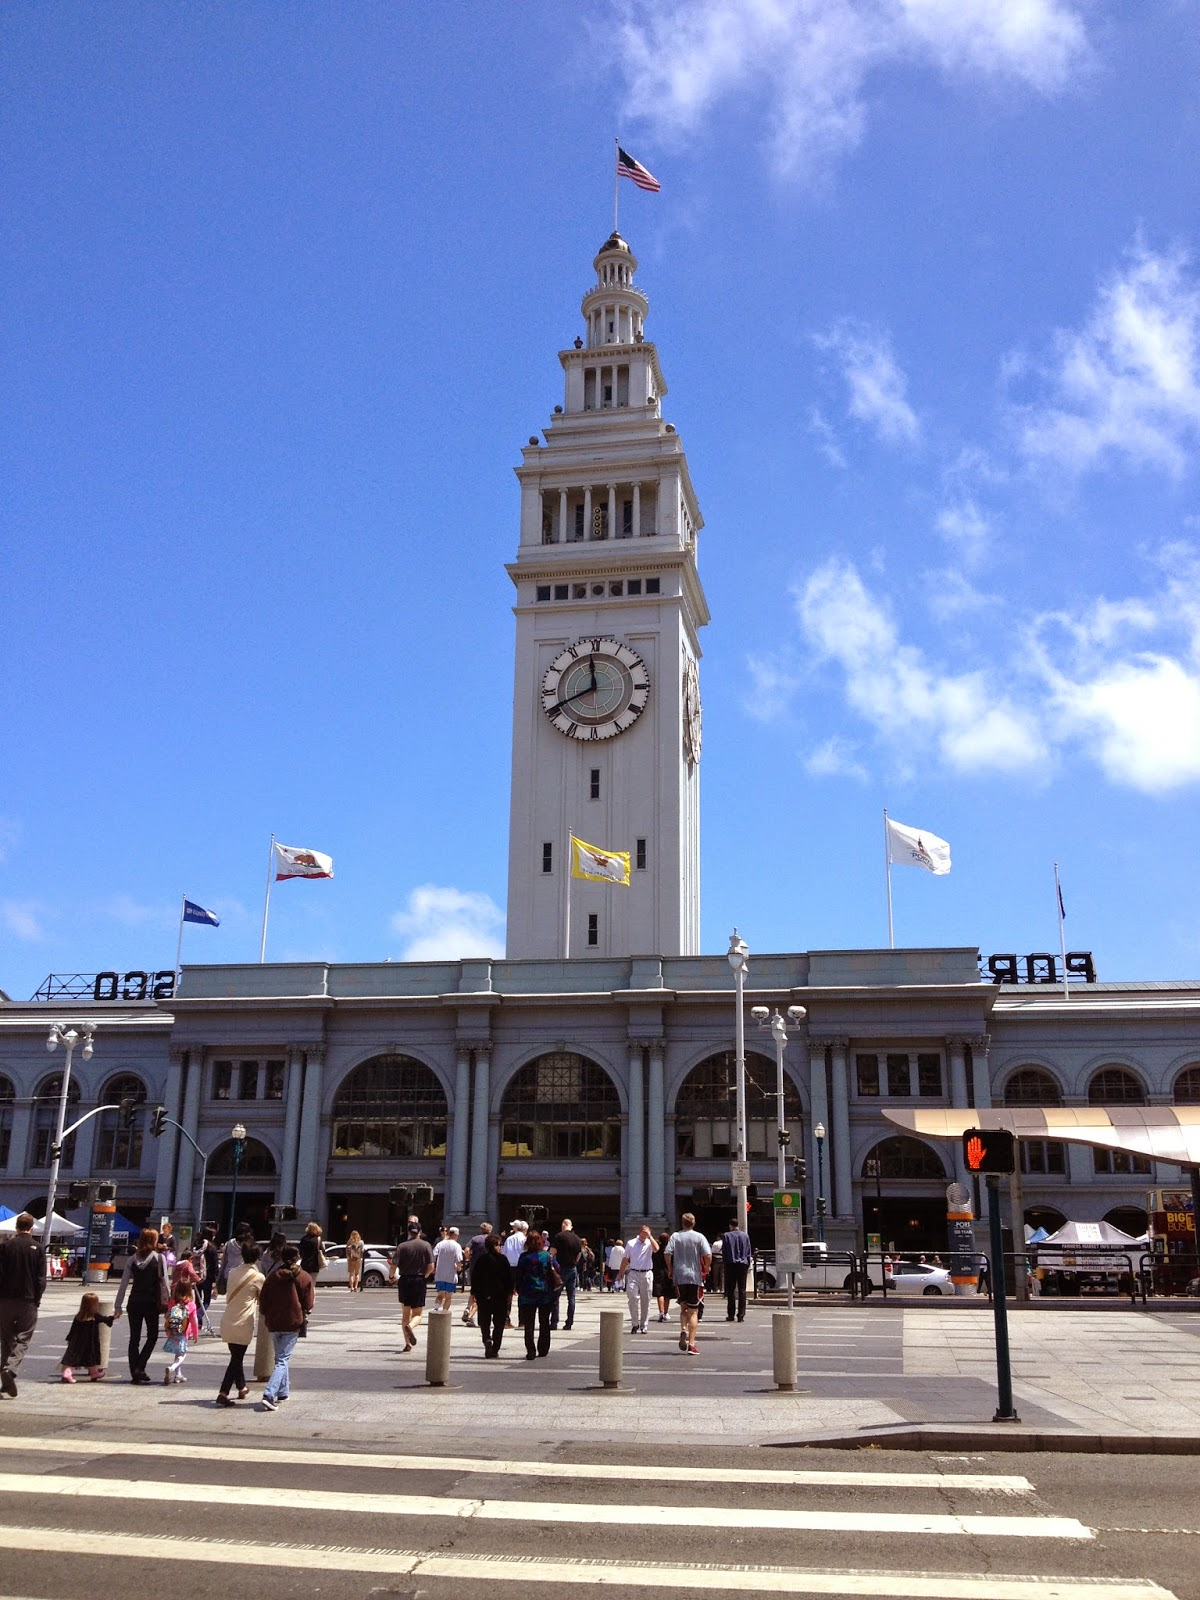 Ocean Views & Slippery Eats at the San Francisco Ferry Building